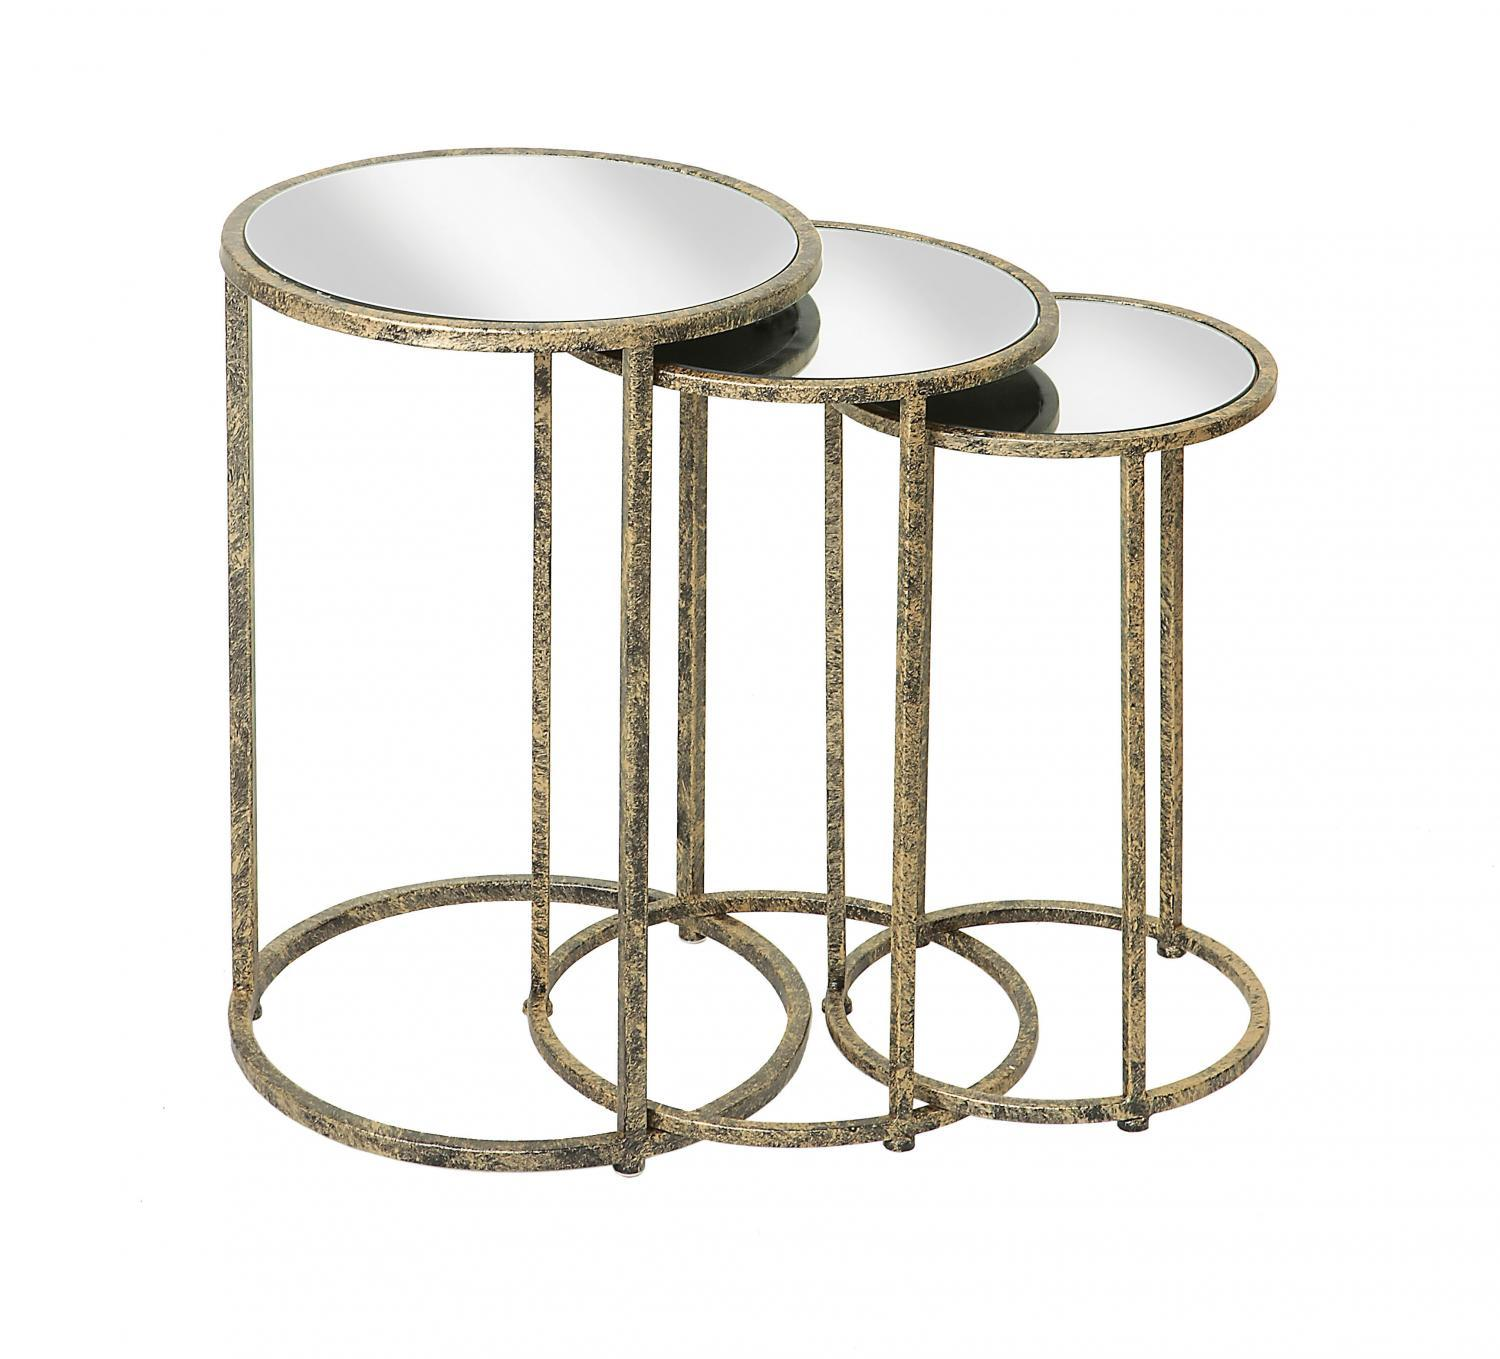 Mirror Top Nest of Tables